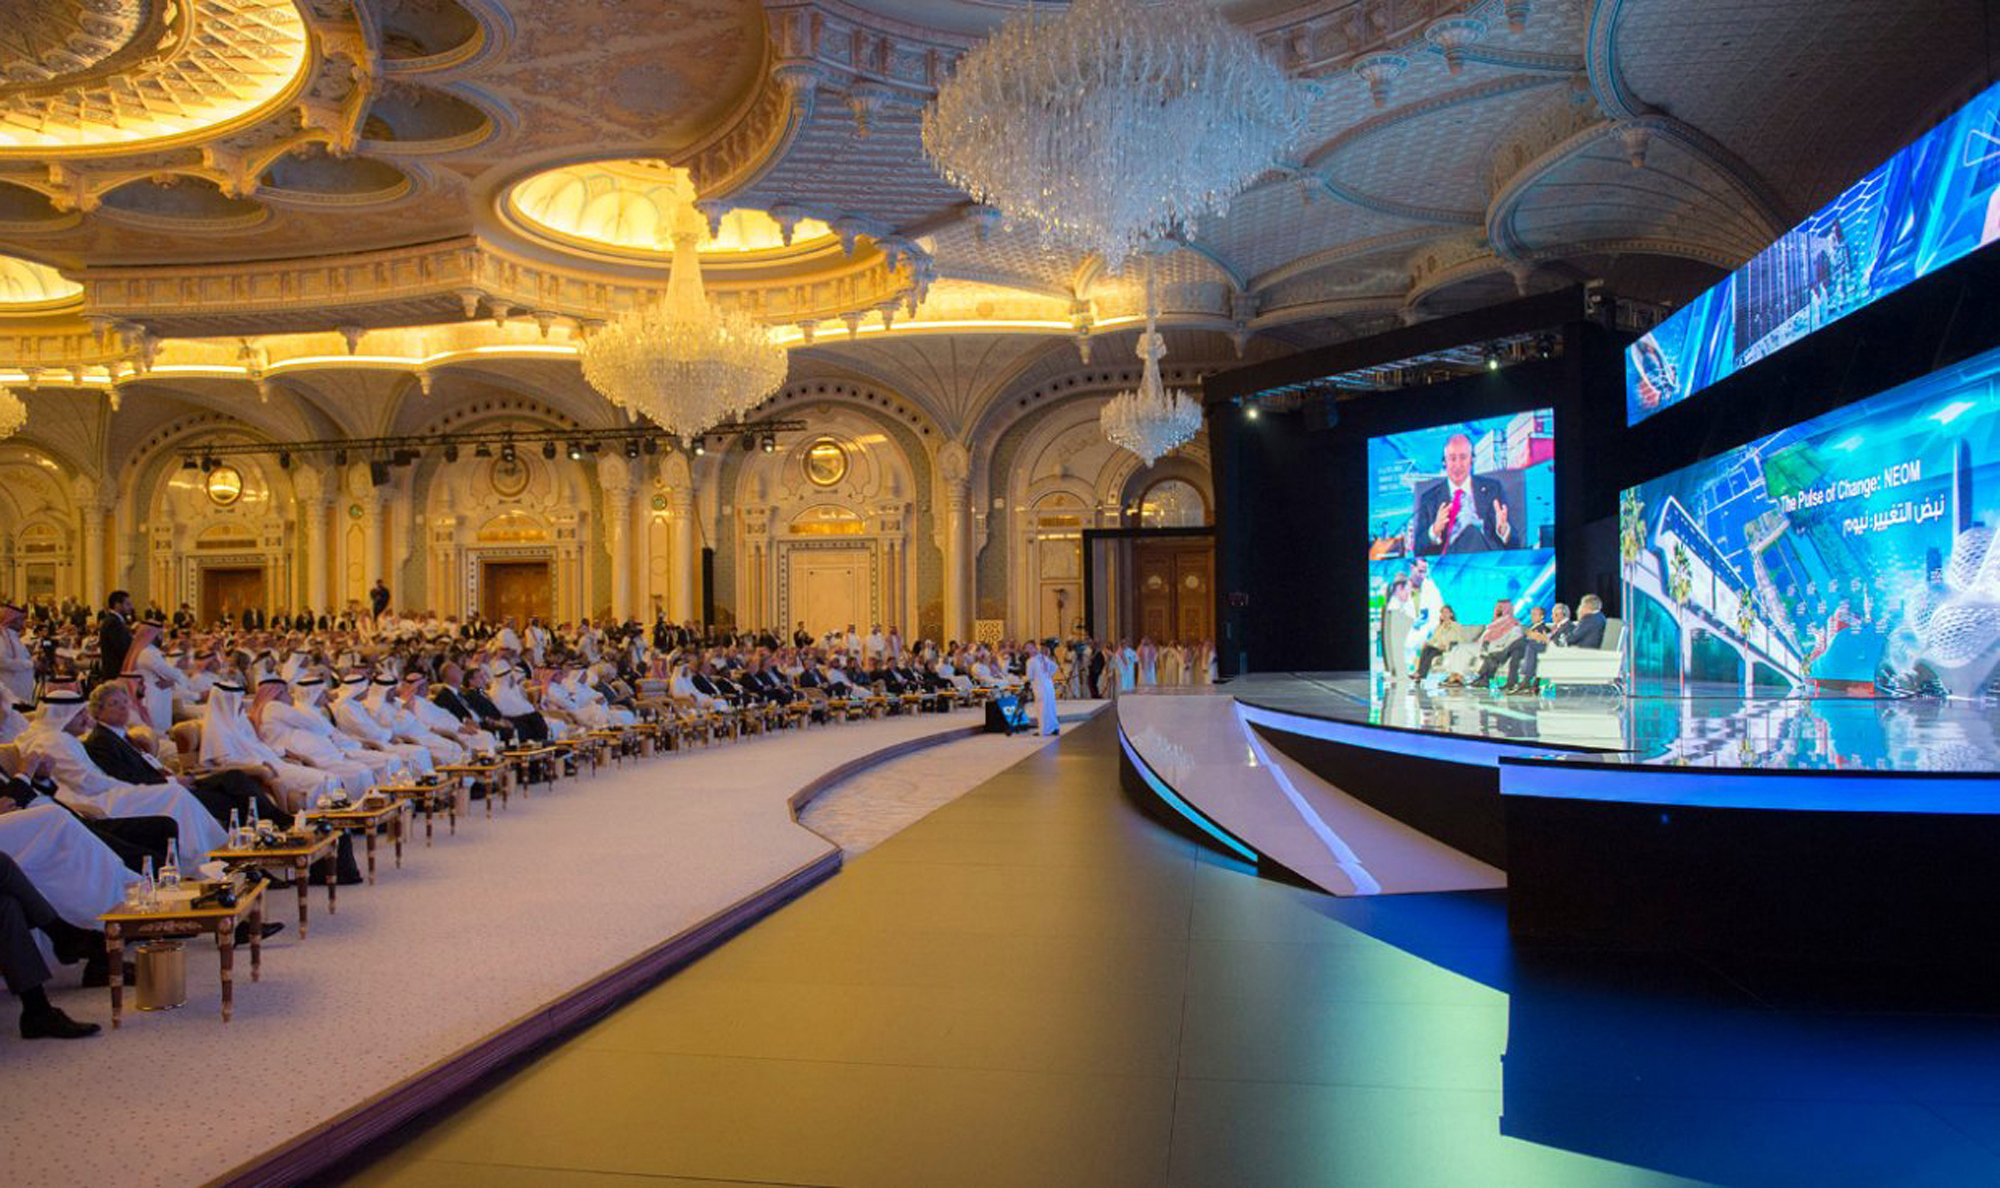 FILE - In this photo released by Saudi Press Agency, SPA, Saudi Crown Prince Mohammed bin Salman and the others attend the opening ceremony of Future Investment Initiative Conference in Riyadh, Saudi Arabia, Oct. 24, 2017.